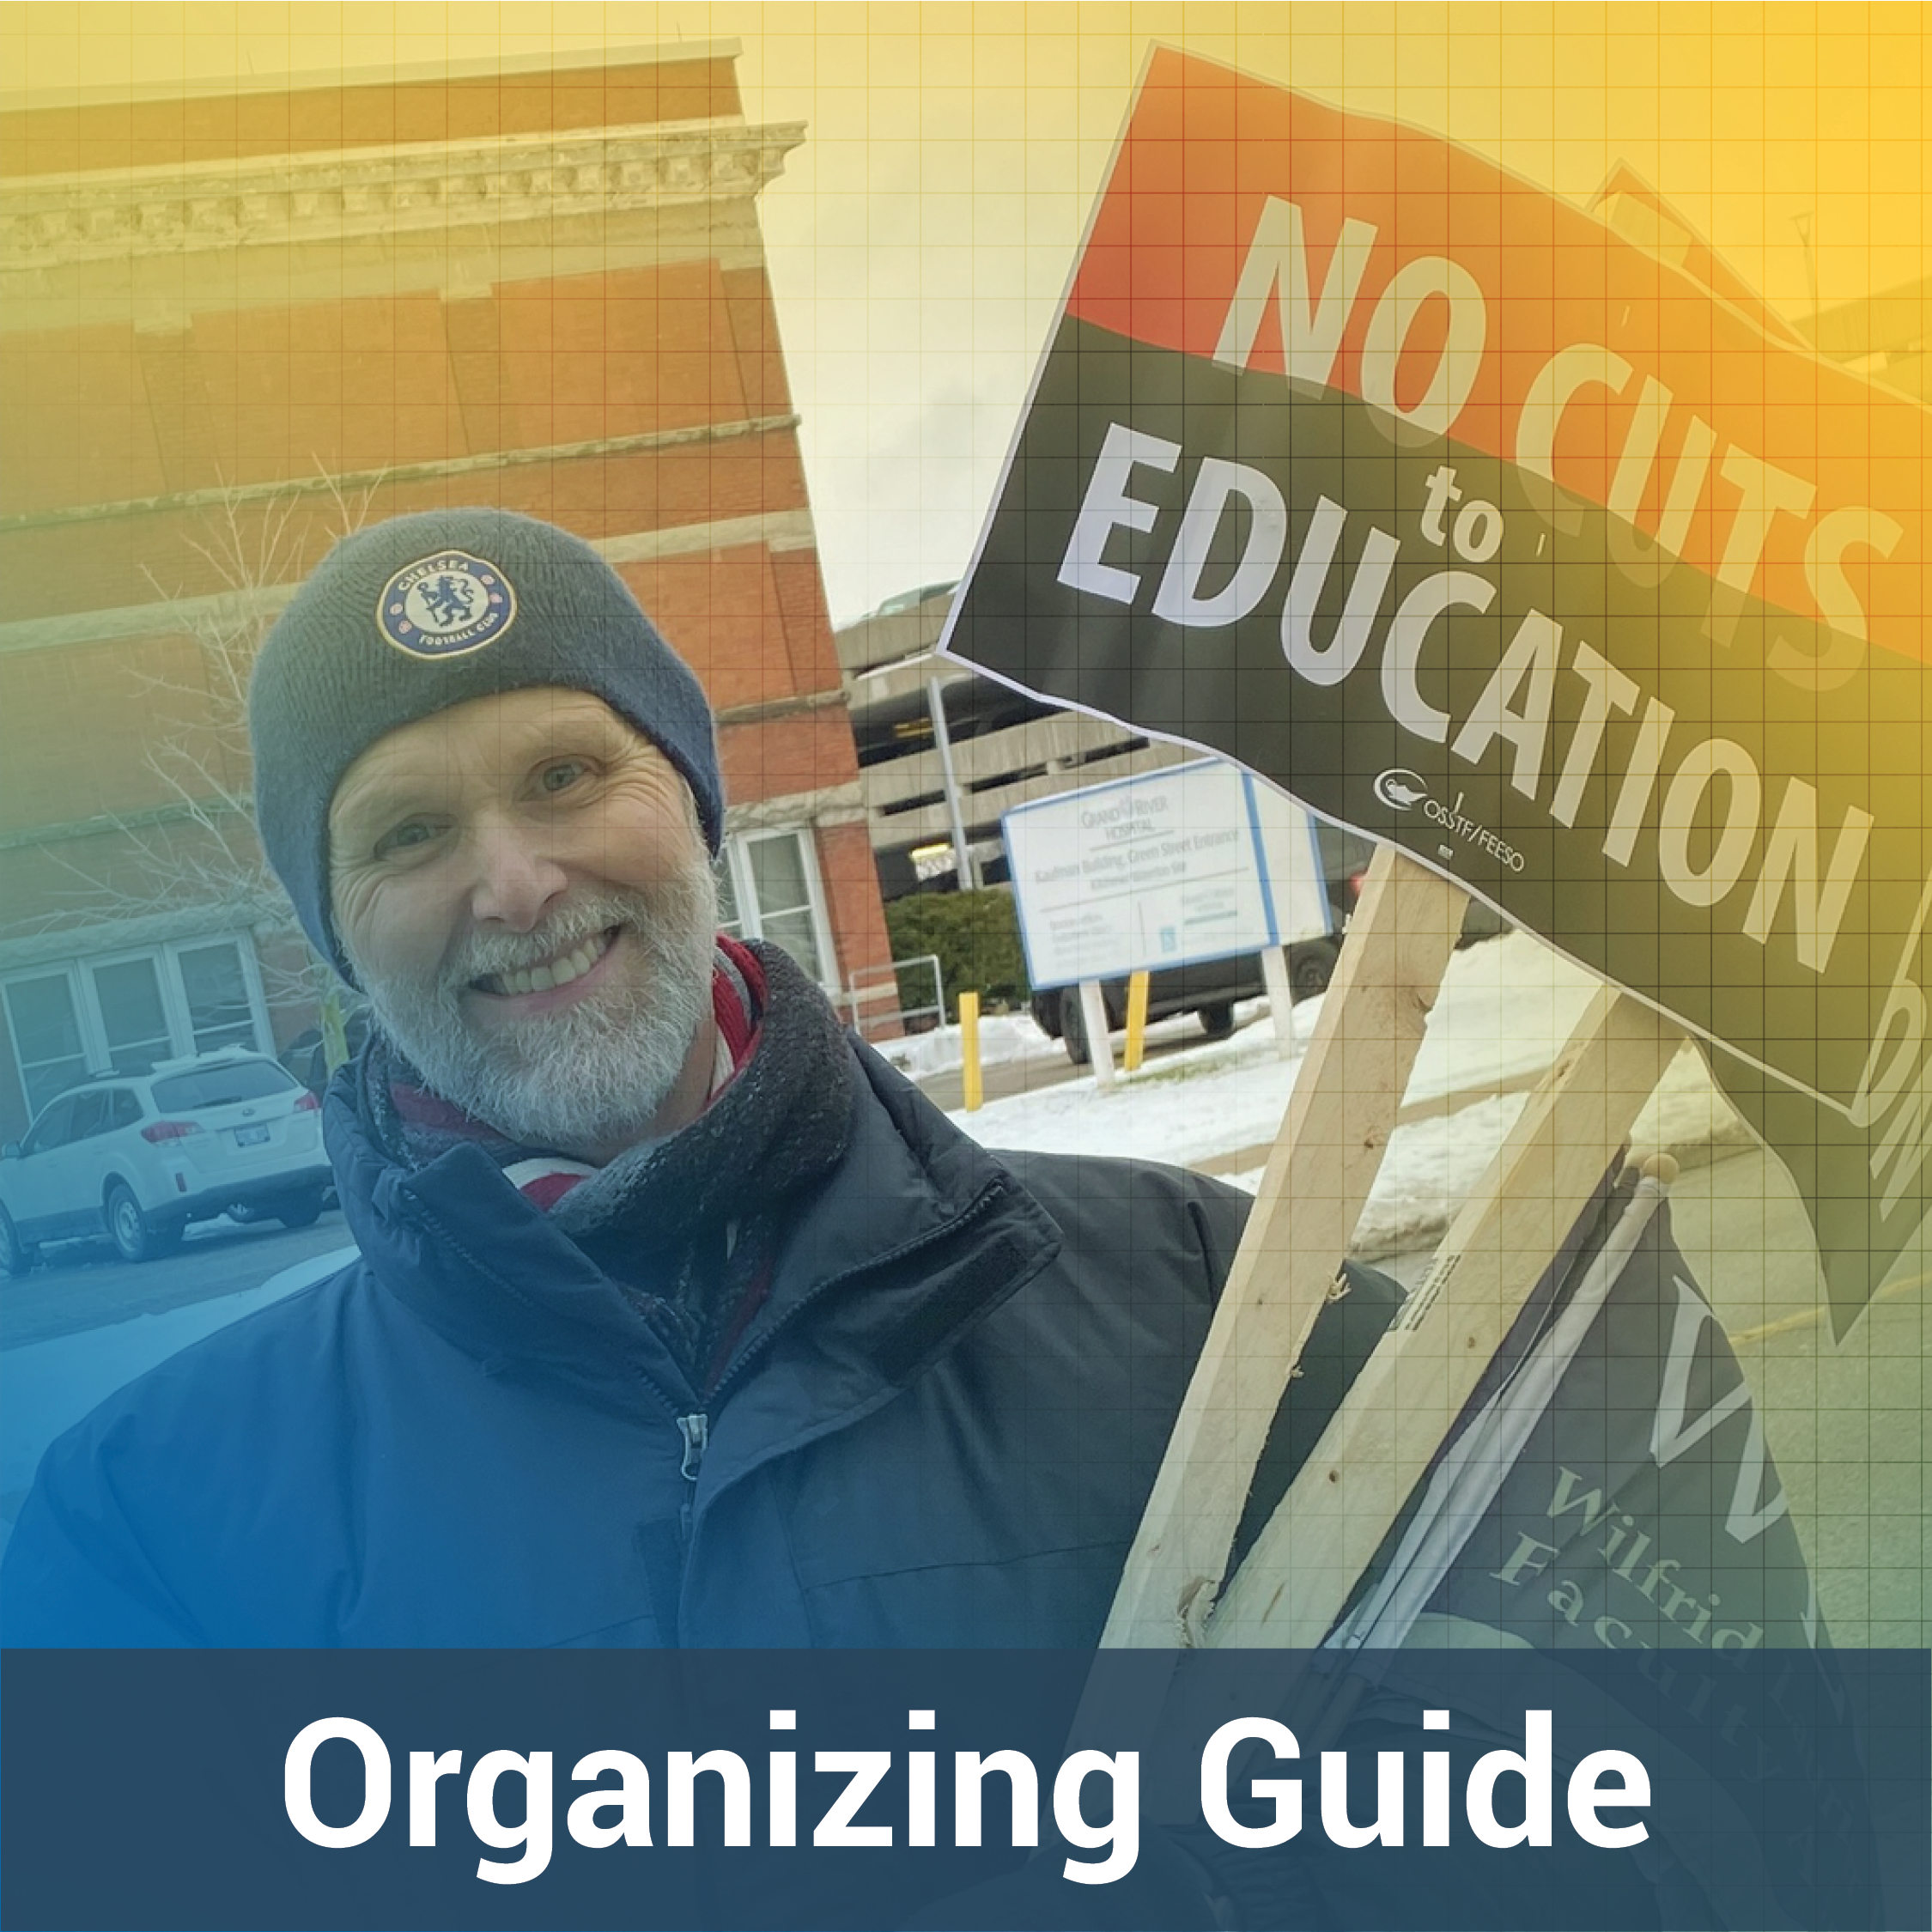 """A man stands in front of a building holding a sign that reads: """"No cuts to education""""."""